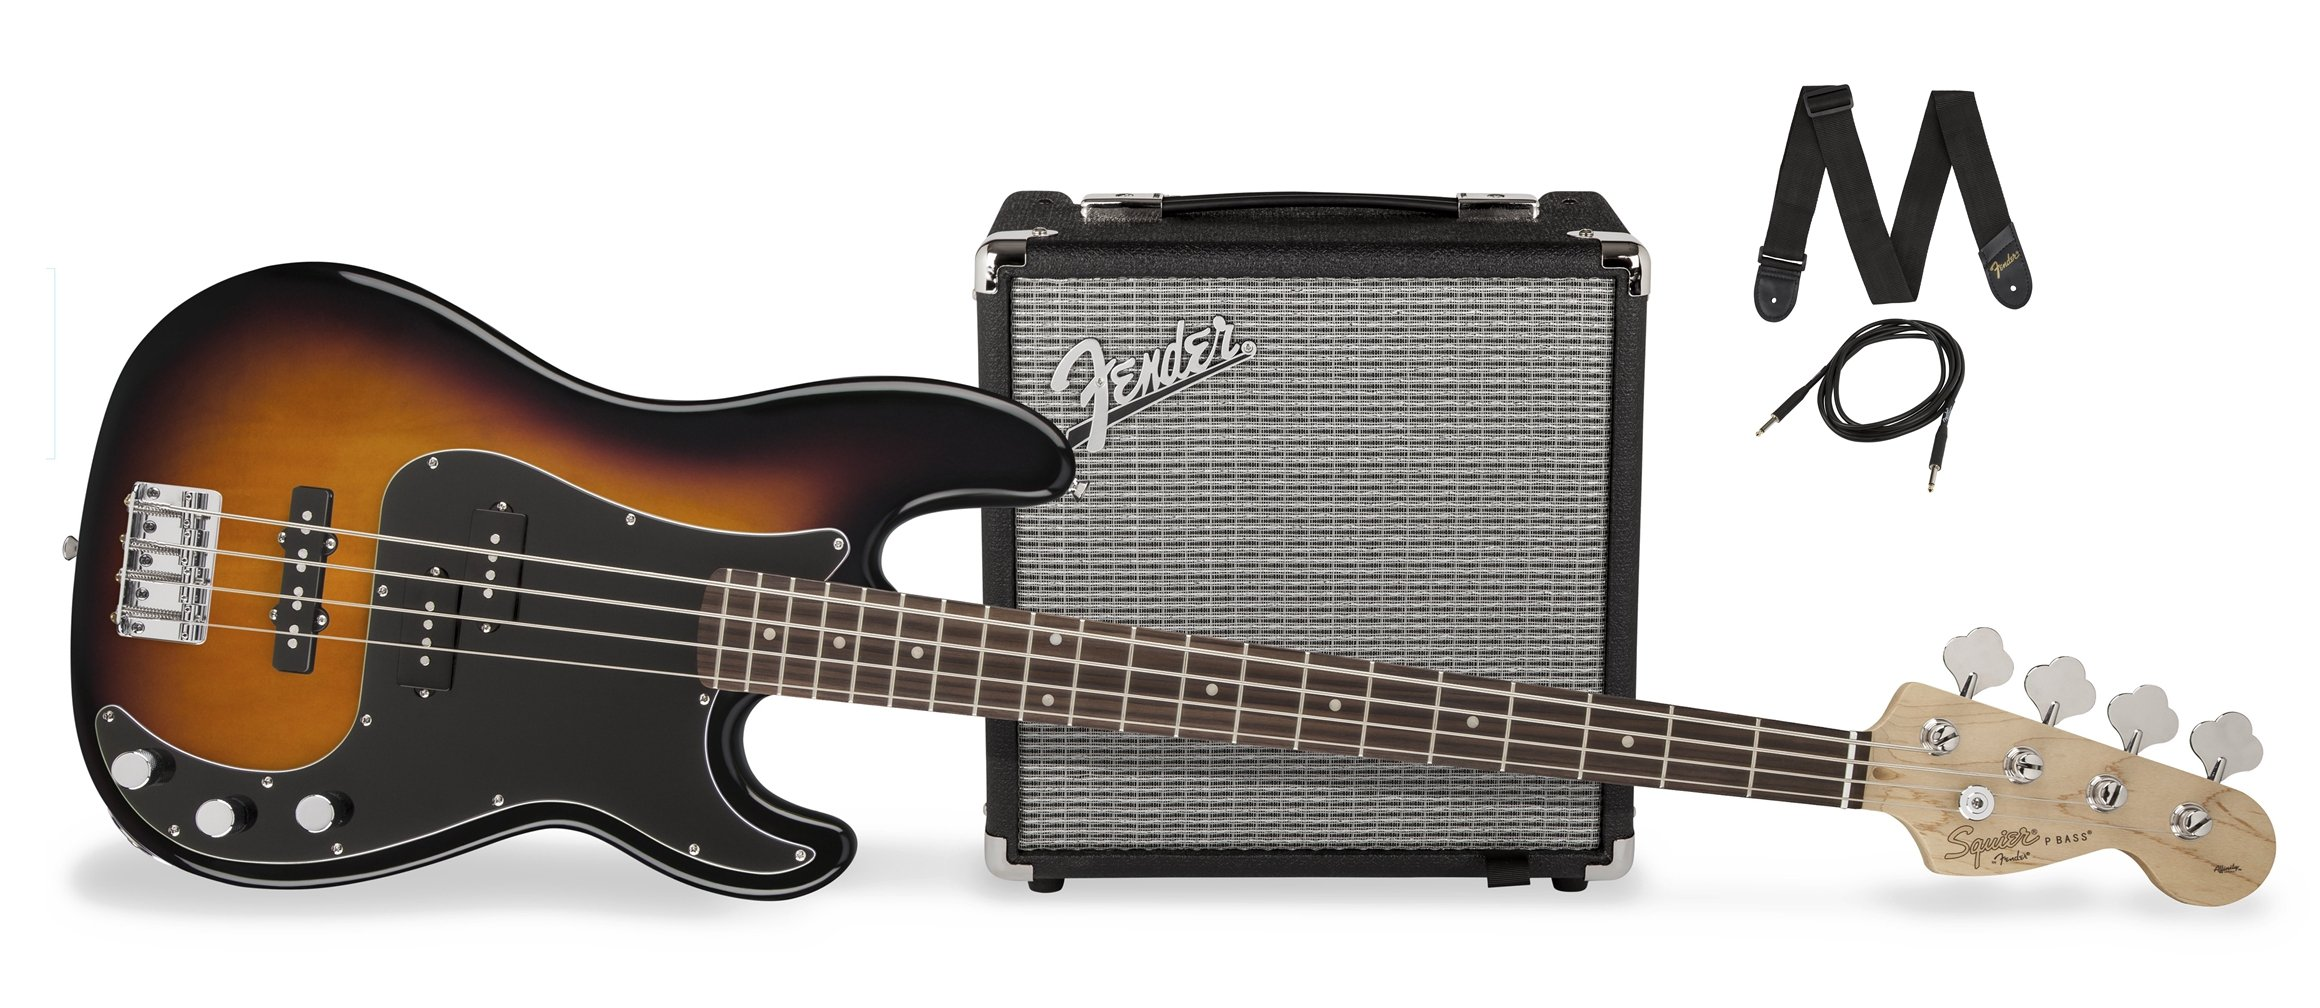 Squier by Fender PJ Electric Bass Guitar Beginner Pack with Rumble 15 Amplifier - Brown Sunburst Finish